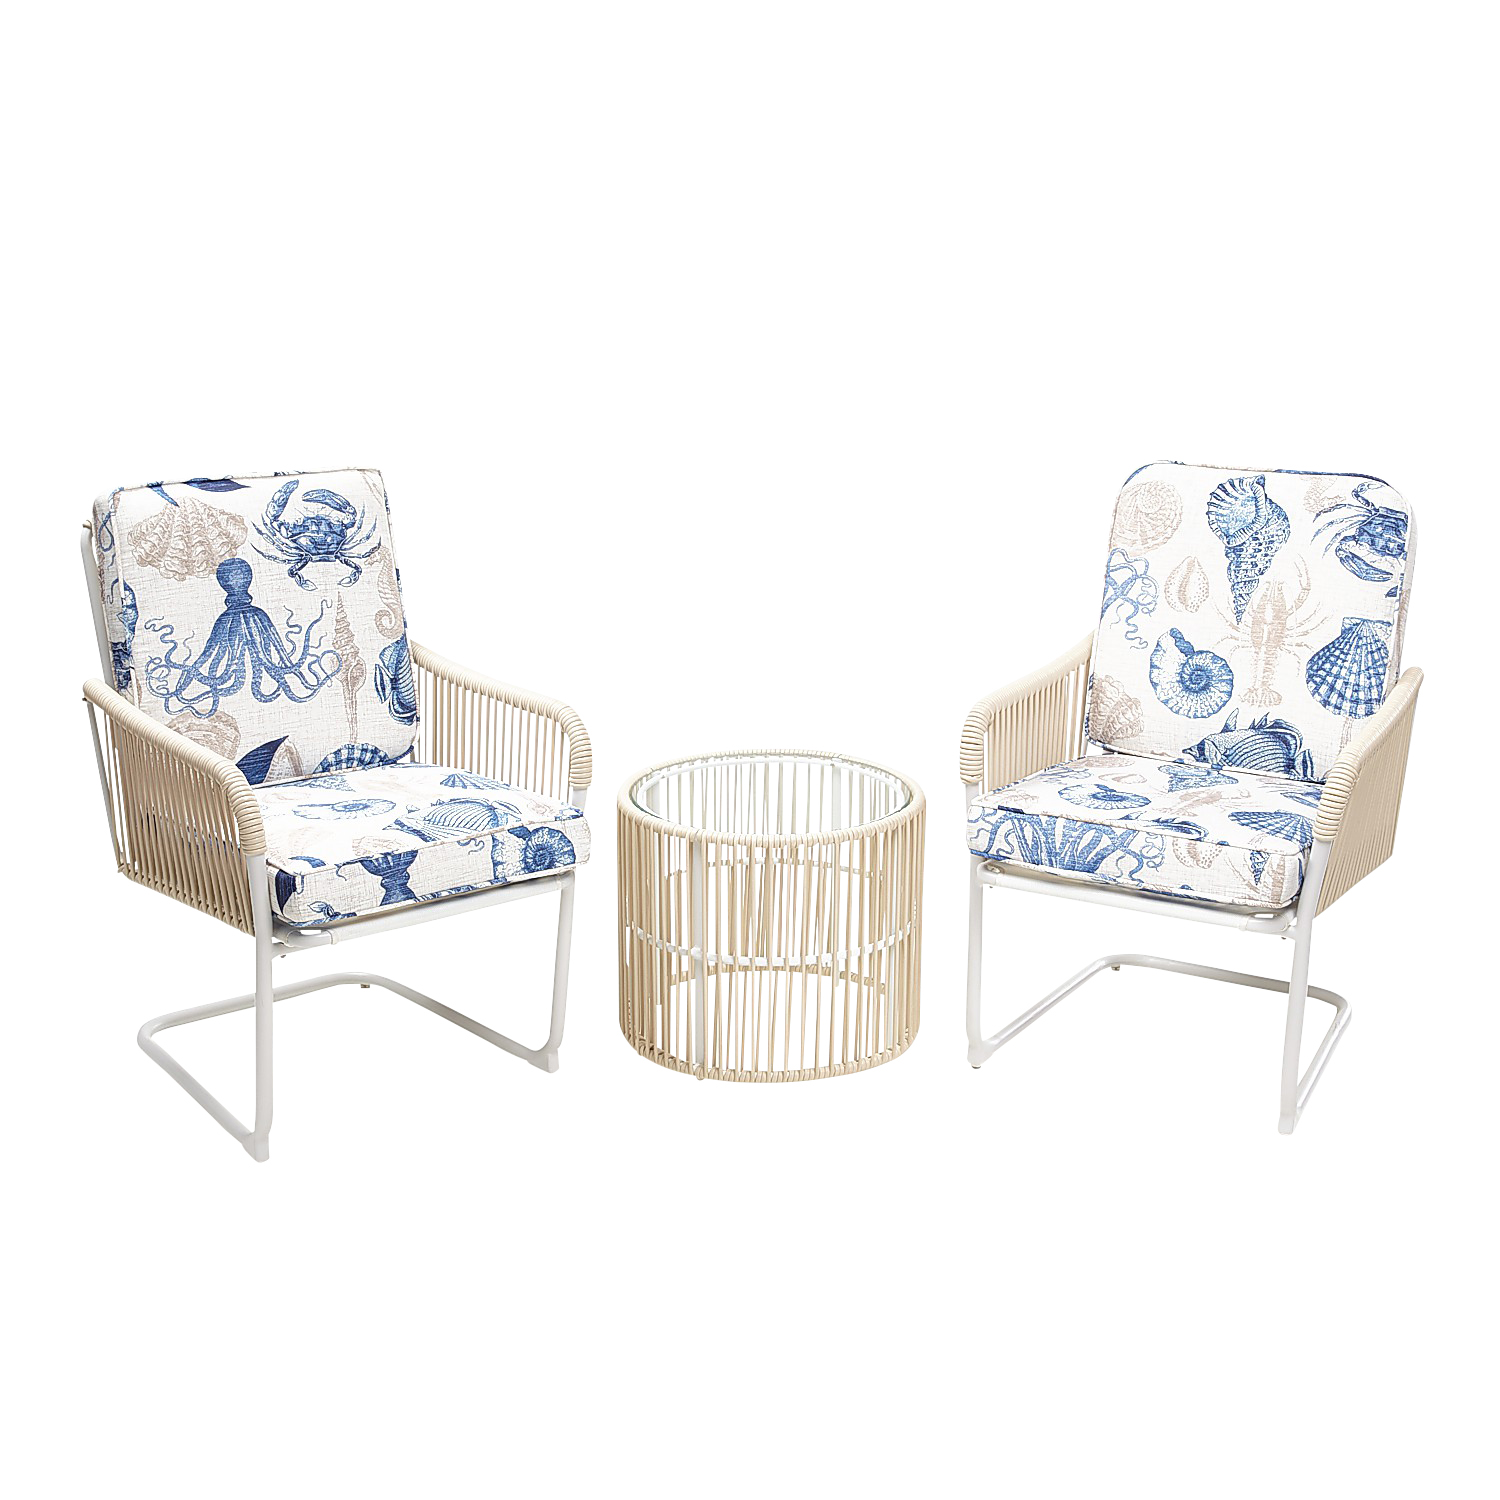 3-Piece Chat Set with Printed Cushions